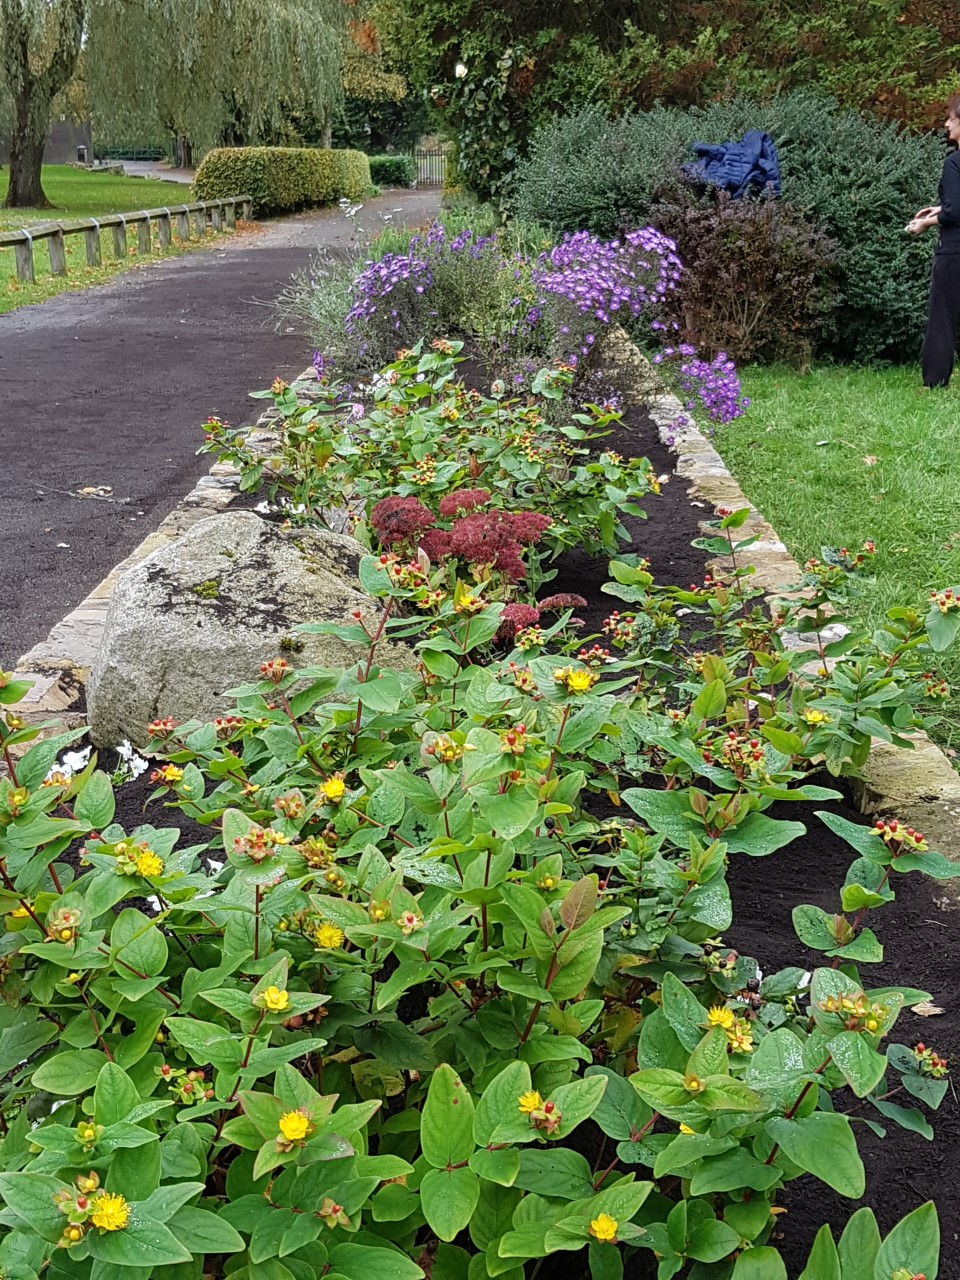 Flower beds at Longsight Park